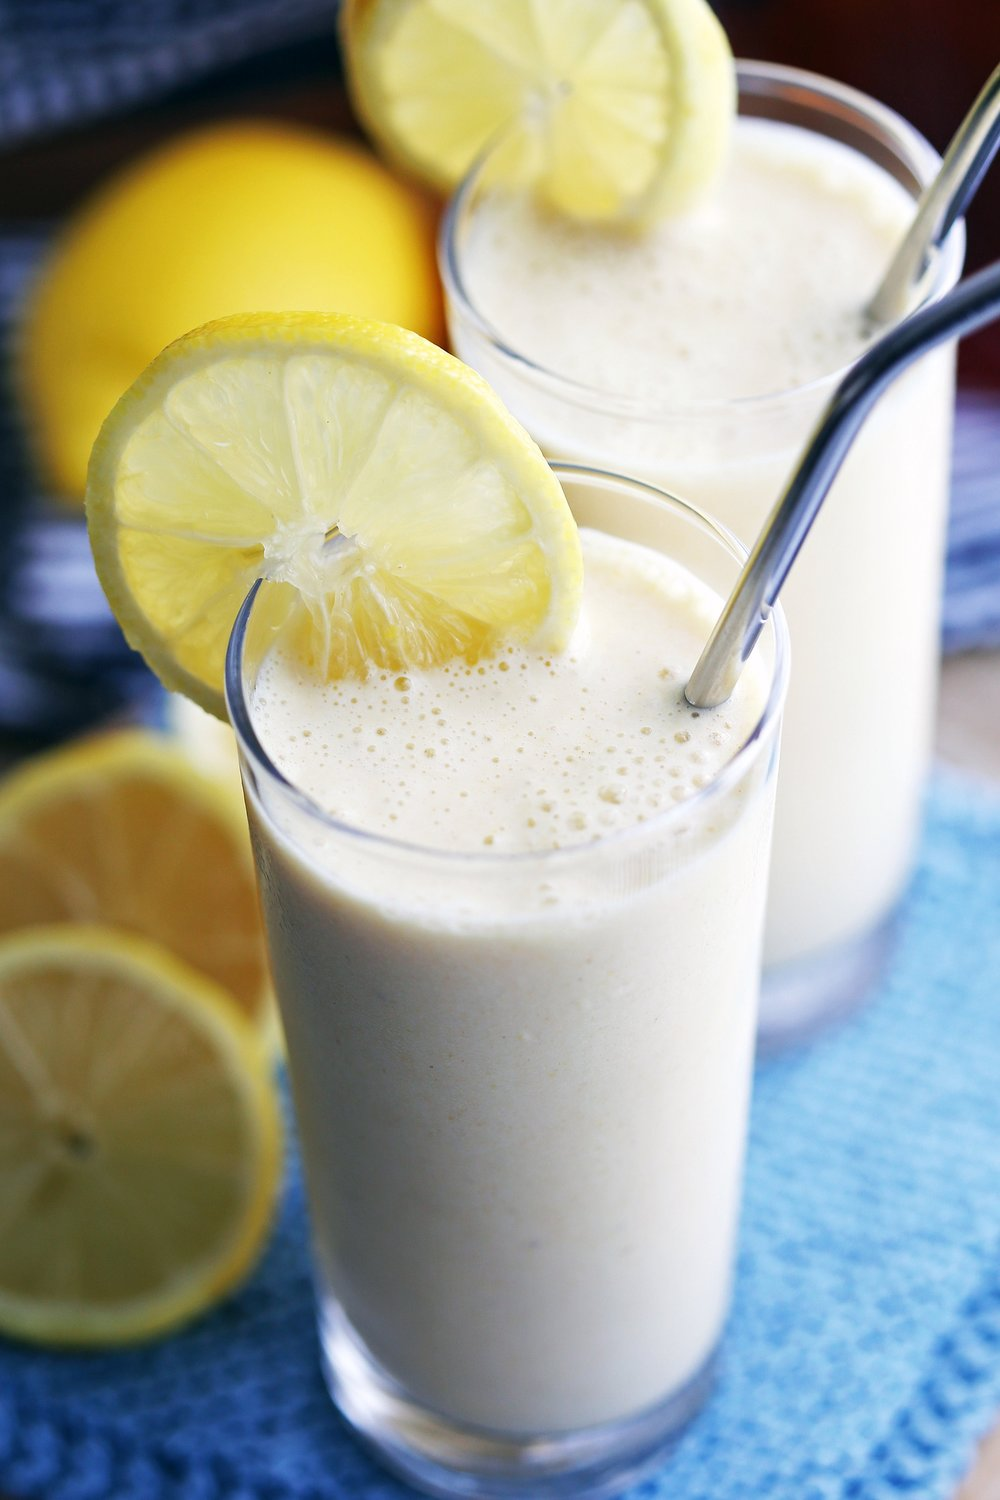 A closeup of lemon pineapple smoothie in a tall glass with metal straw and lemon garnish with another similar glass behind it.